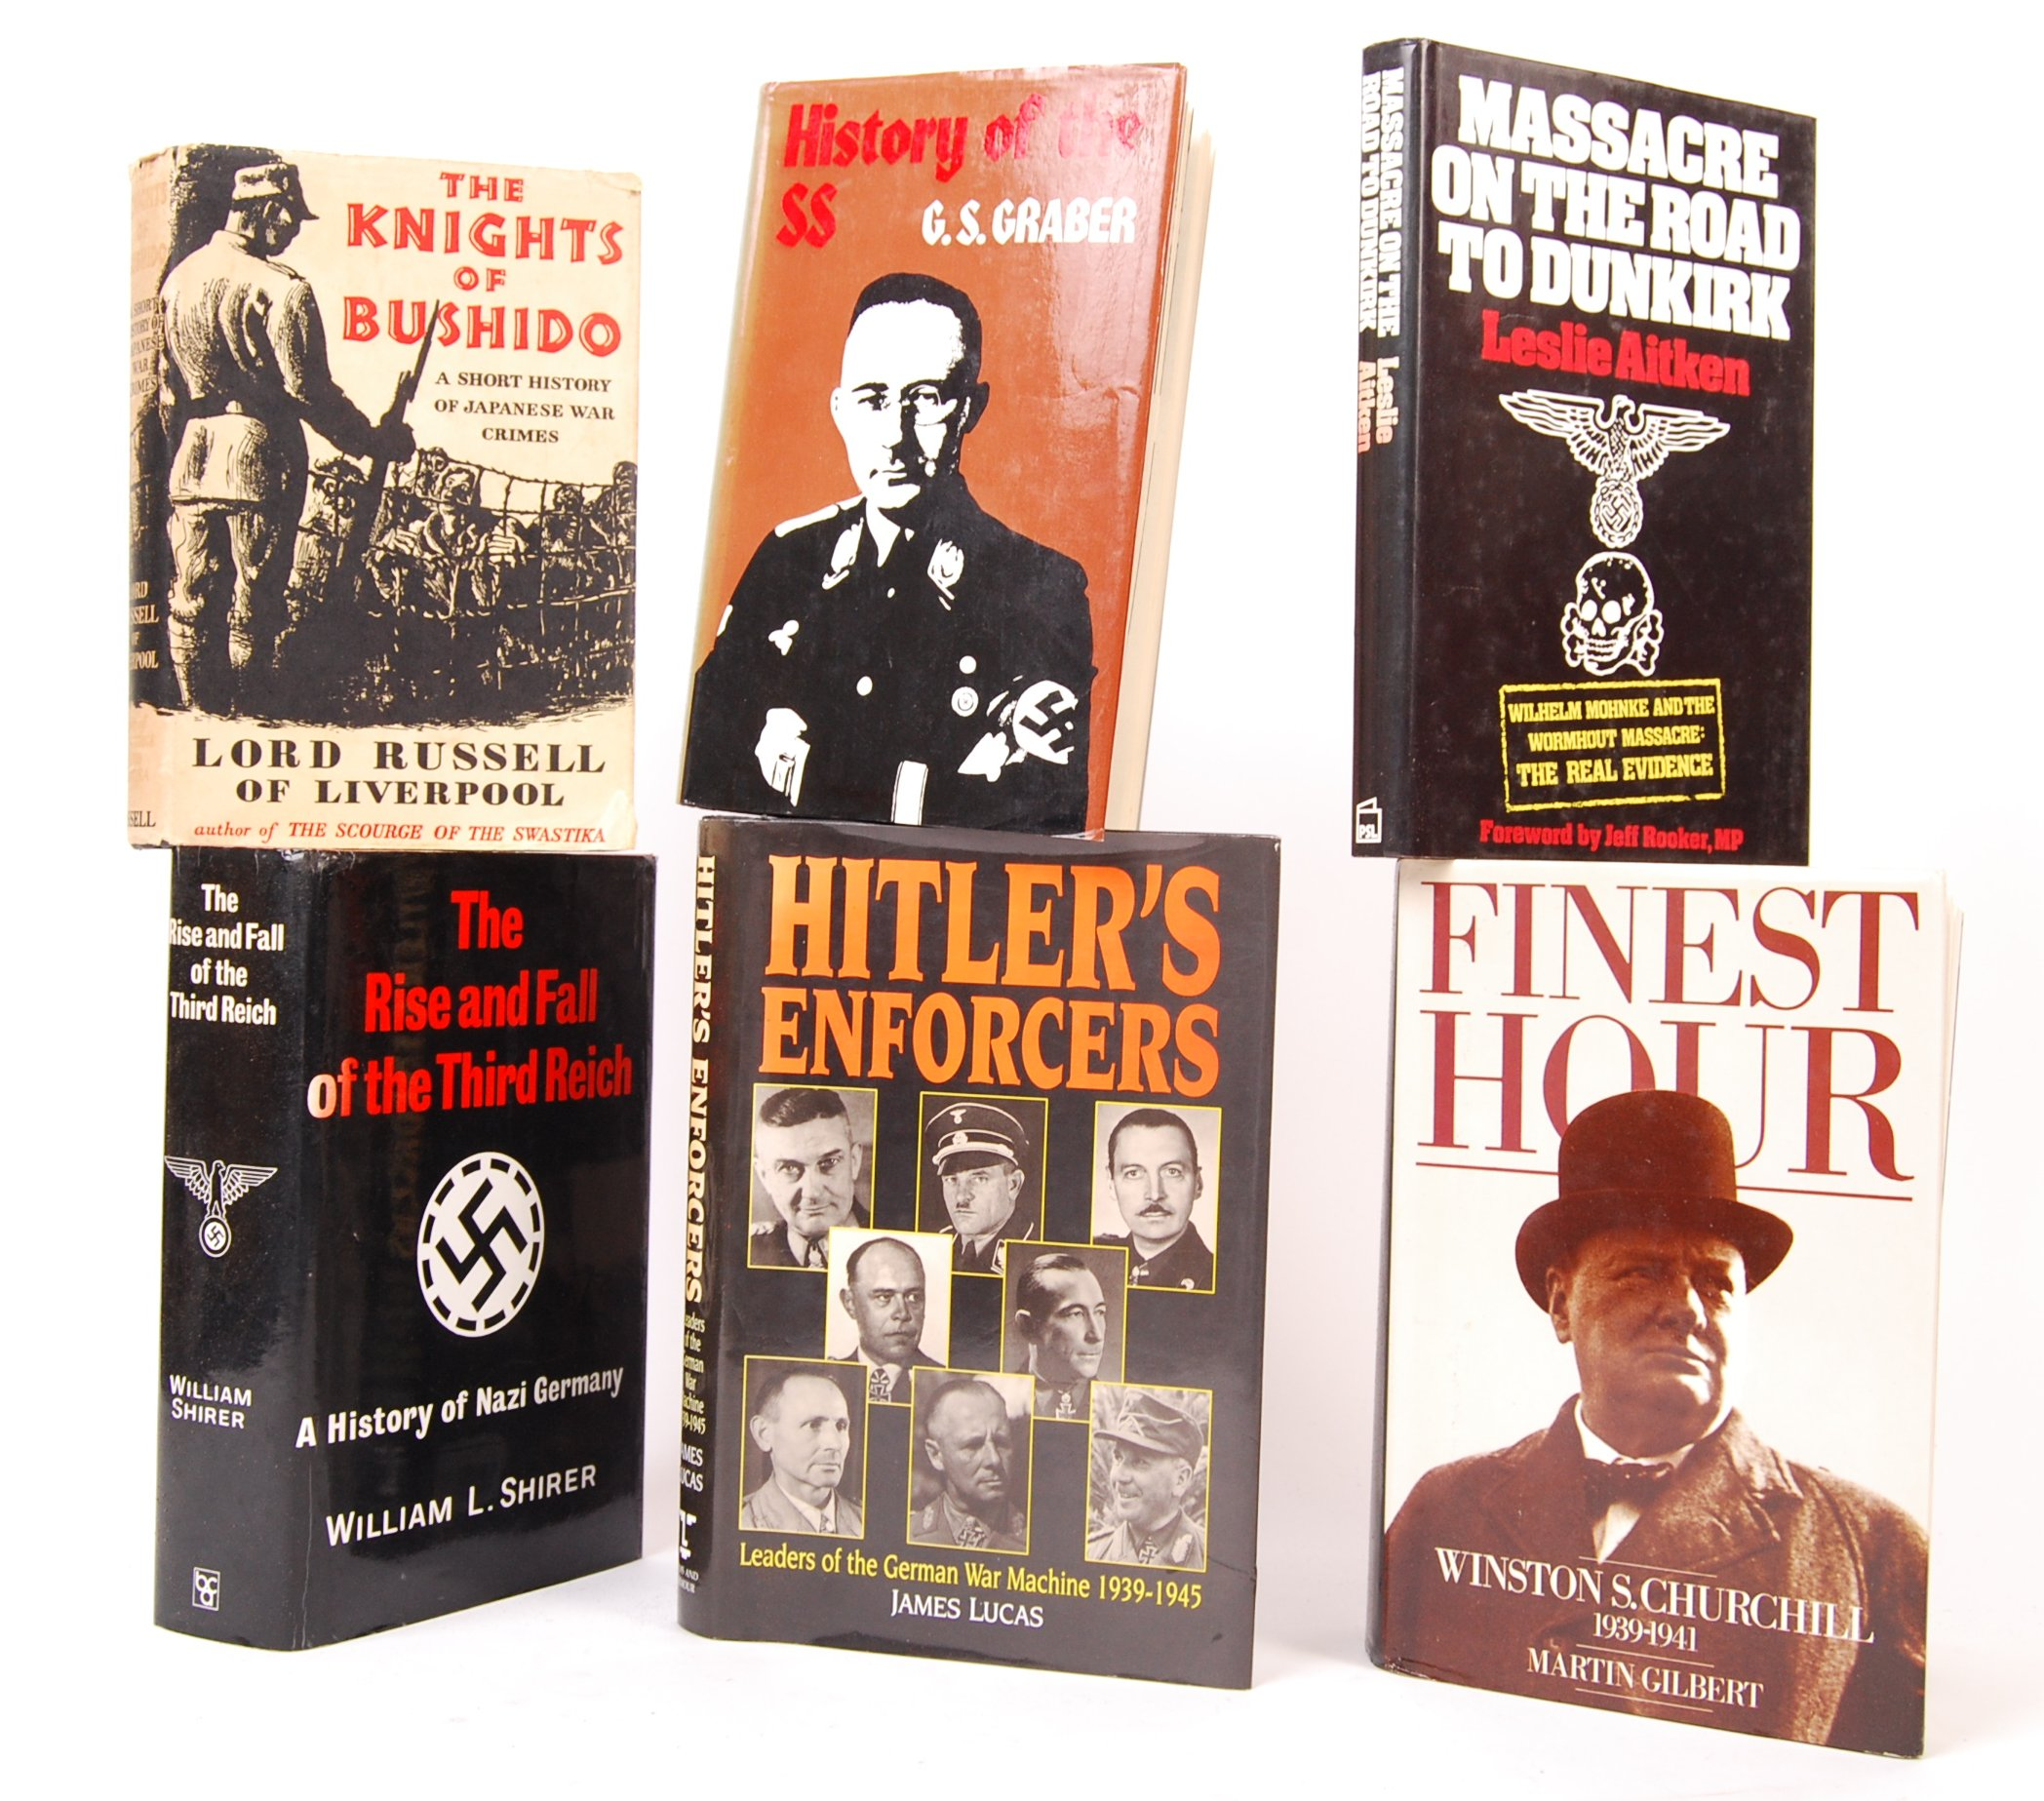 Lot 204 - WWII WORLD WAR TWO MILITARY RELATED HARDBACK BOOKS